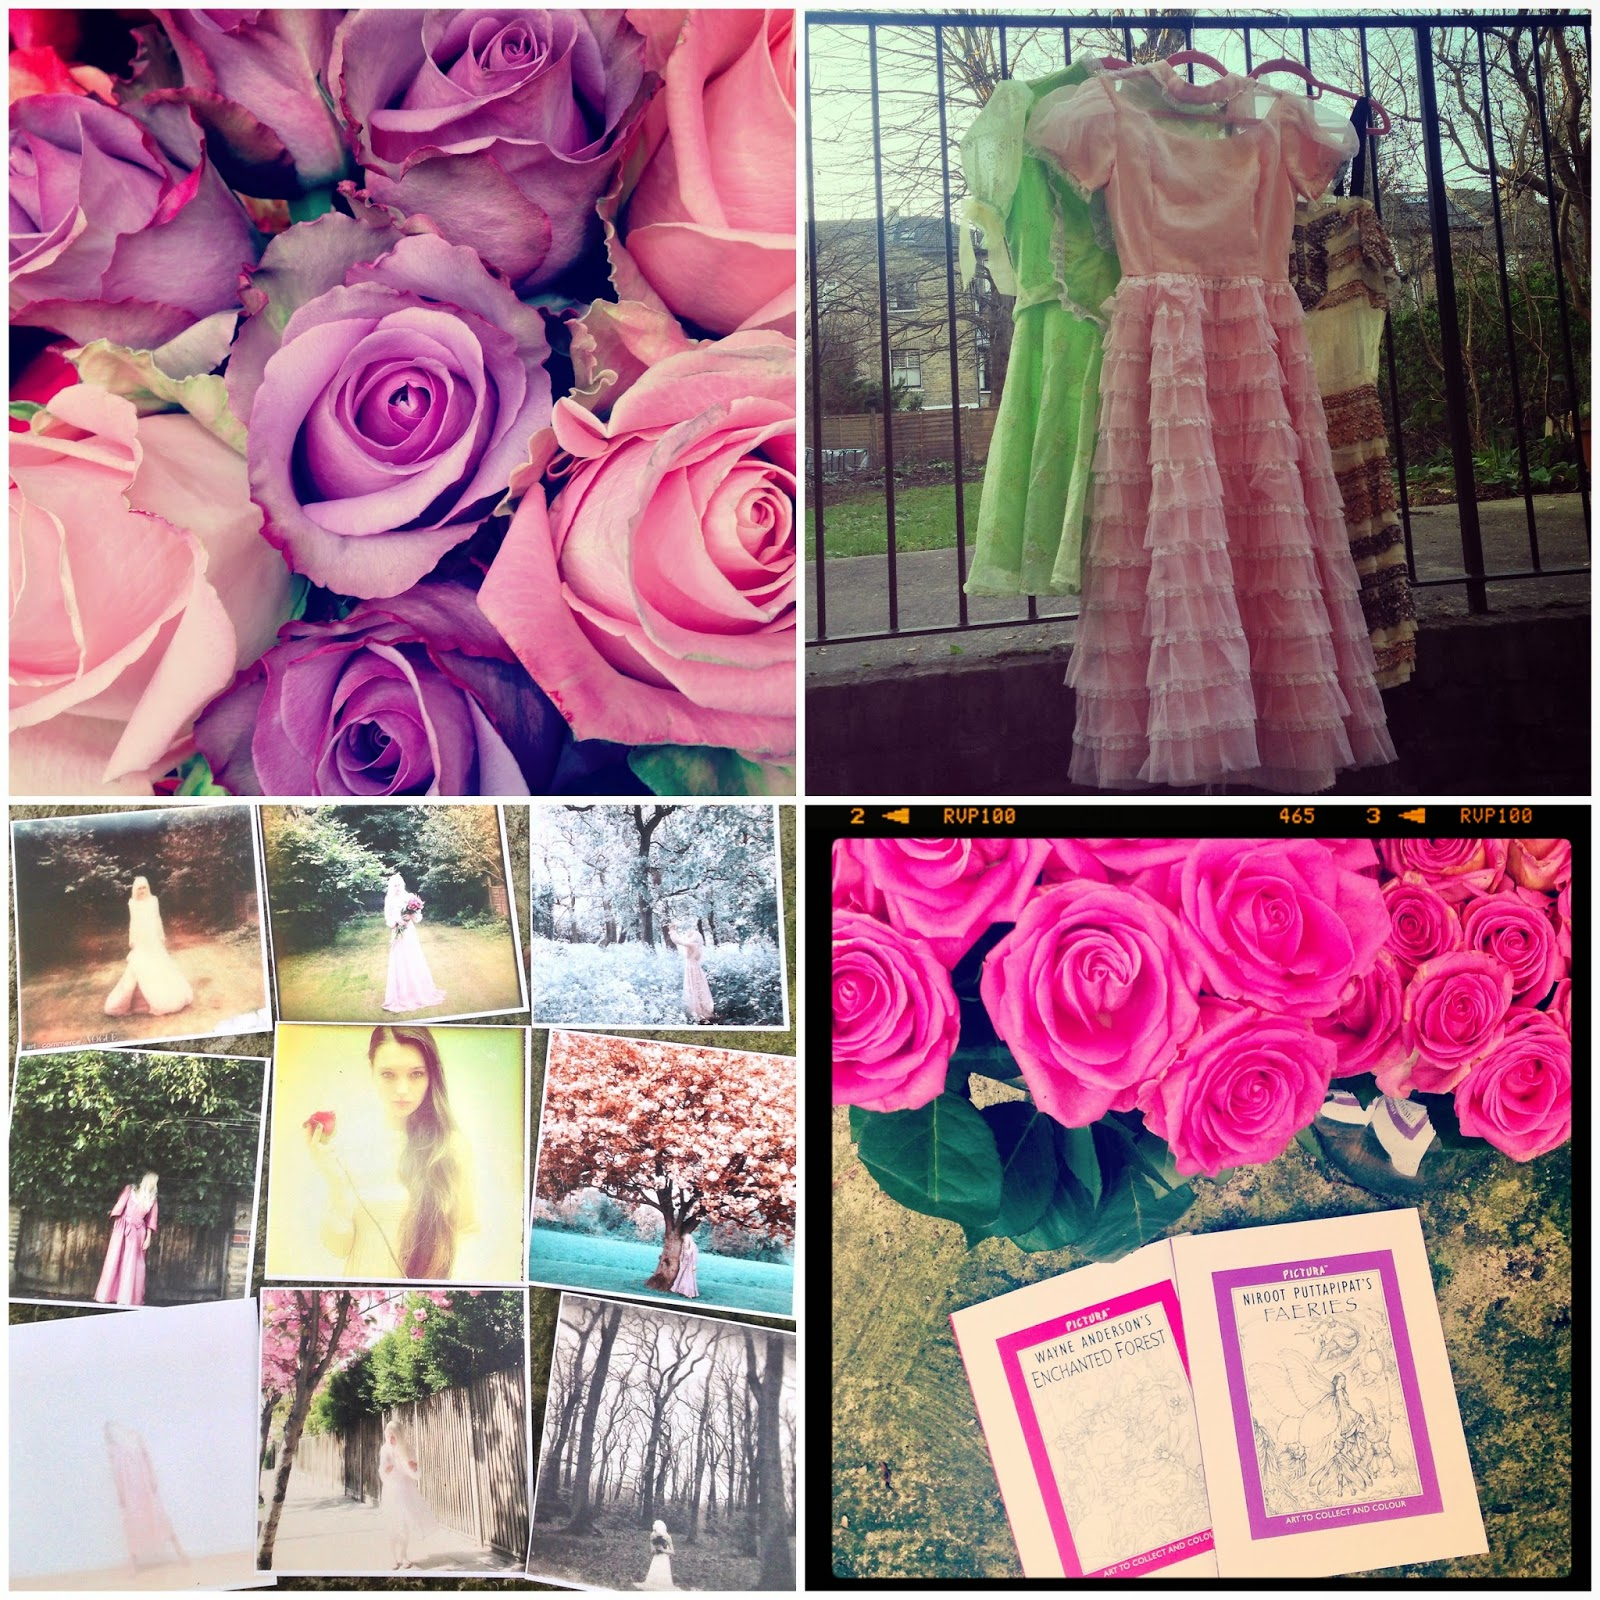 Roses from Liberty London, Beyond Retro dresses & Alice Solantania Saga's fine art photography